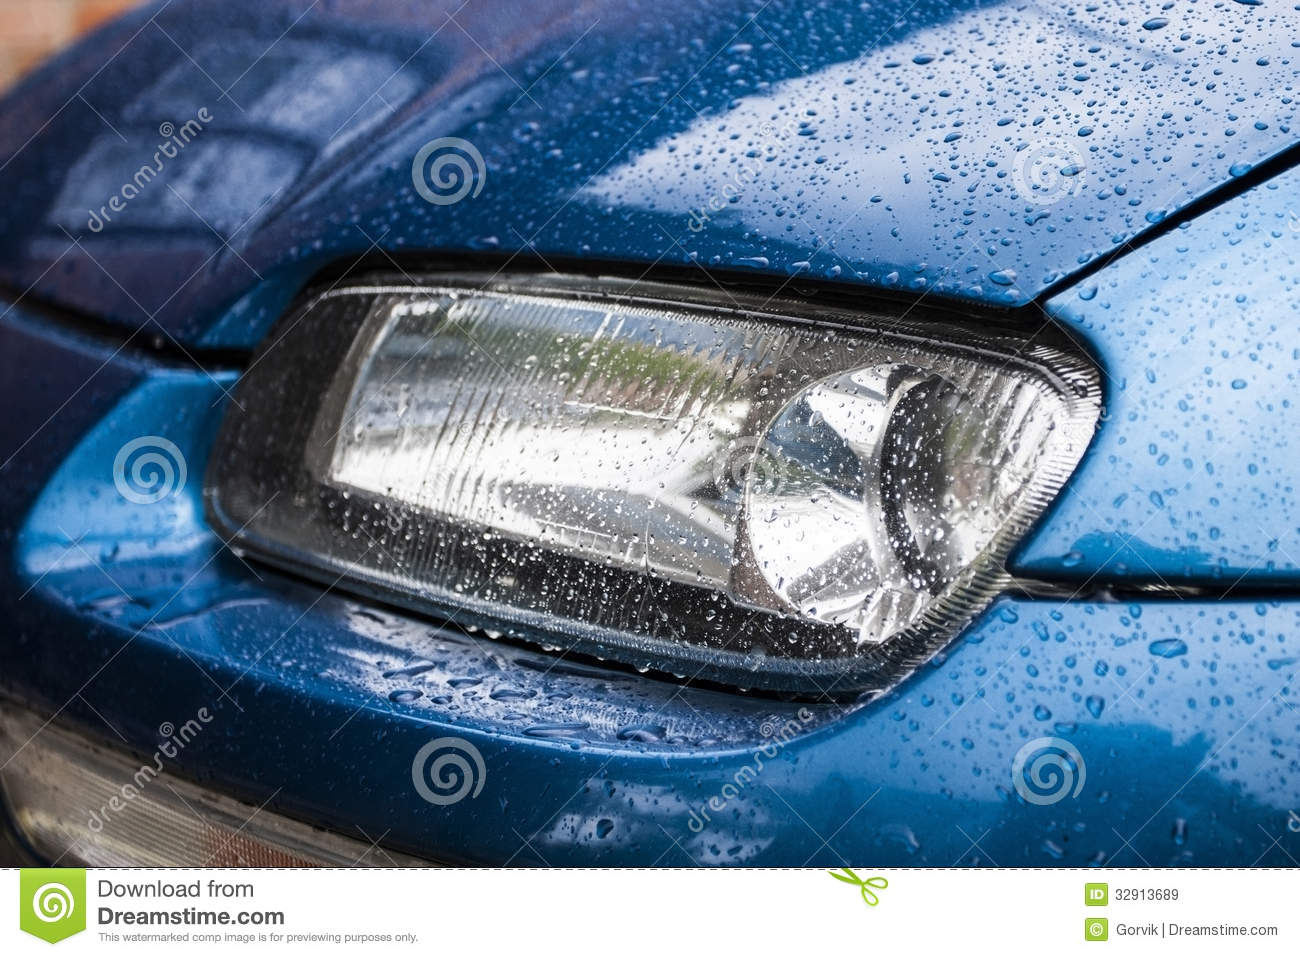 Truck Headlights In Rain : Car headlights after a rain royalty free stock images